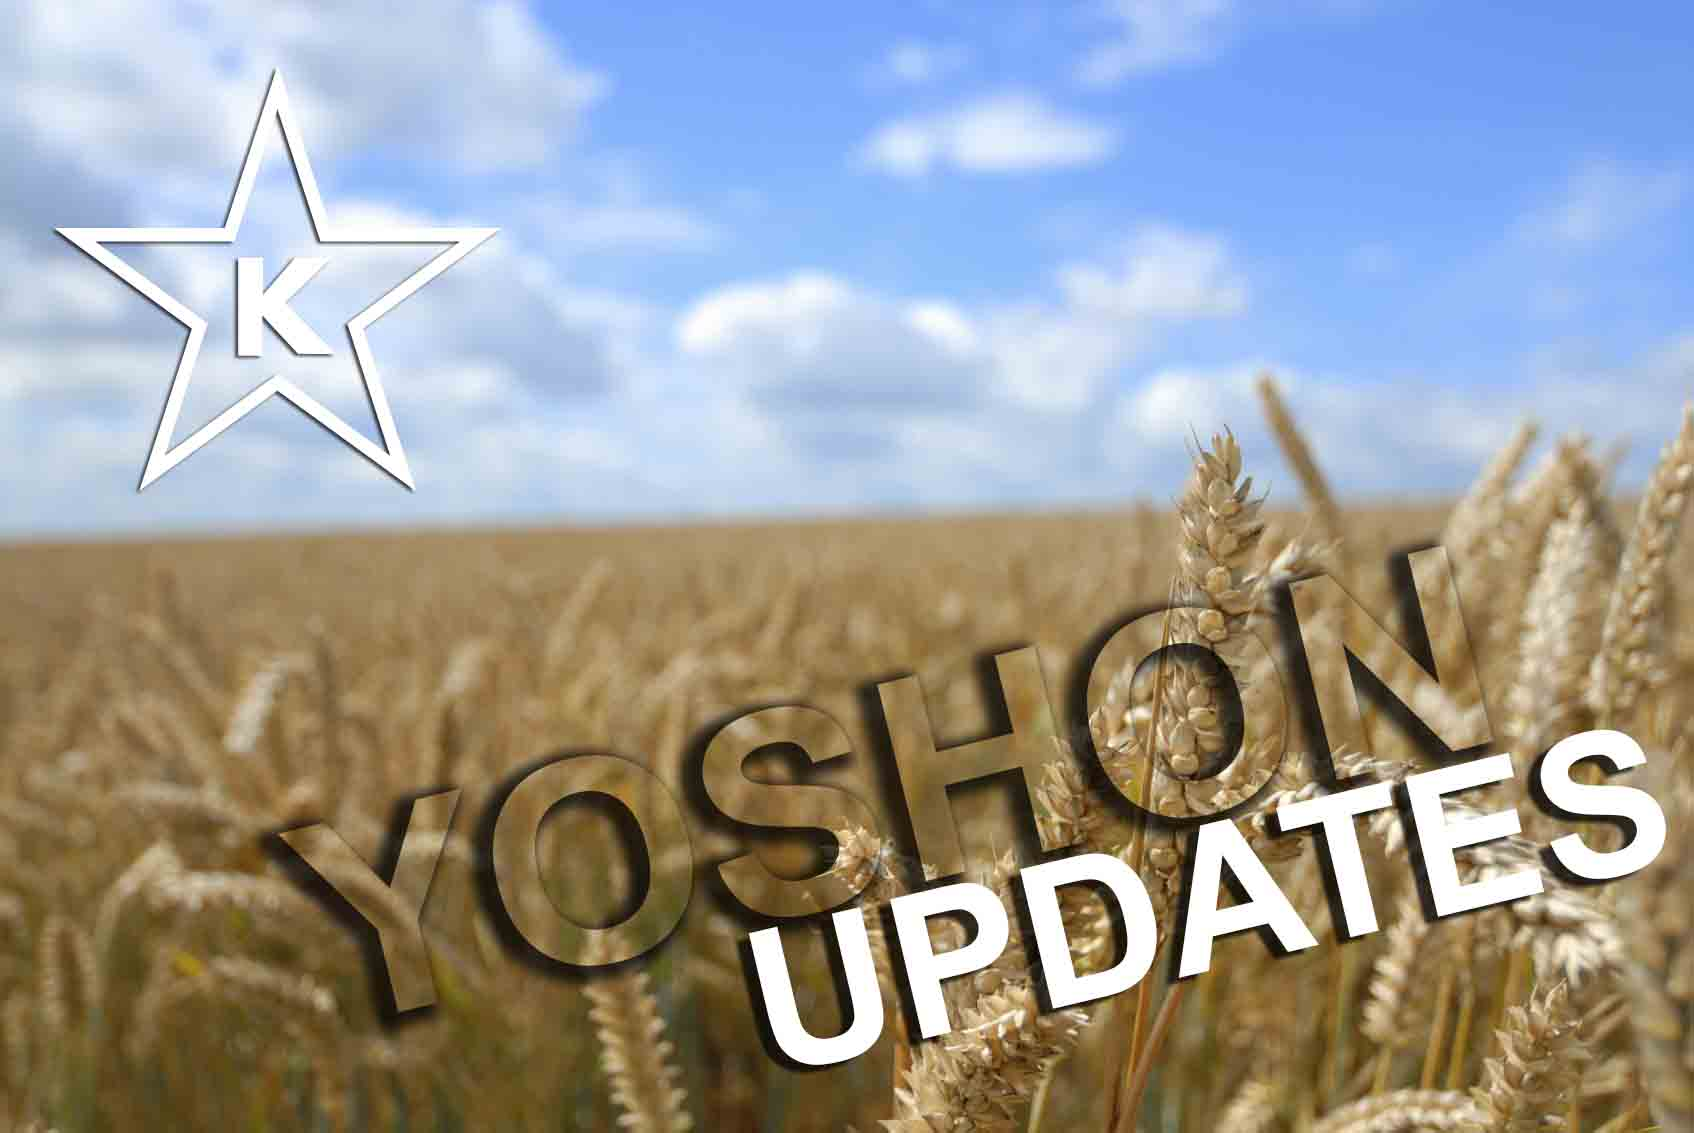 Yoshon Updates – as of December 18, 2019